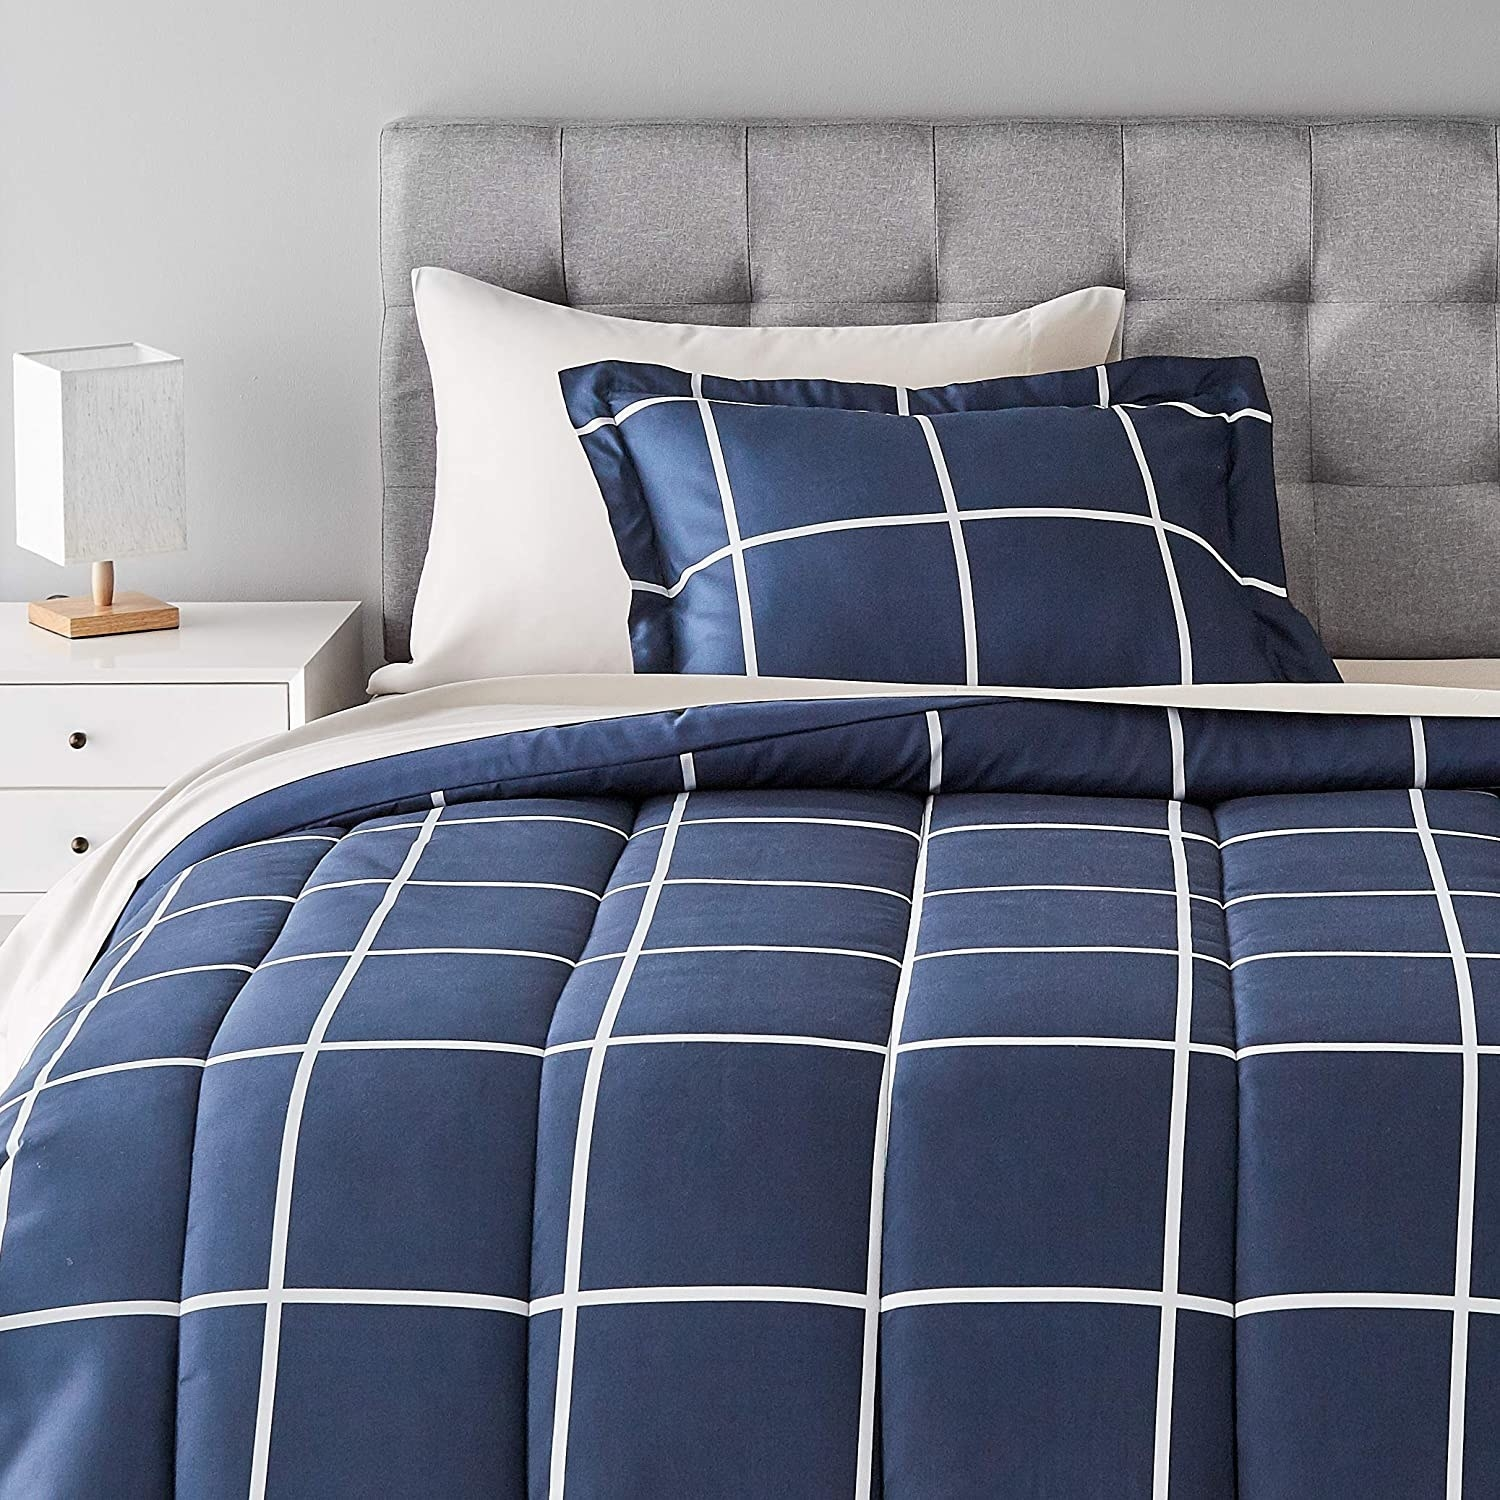 the navy and white checkered bed sheet set